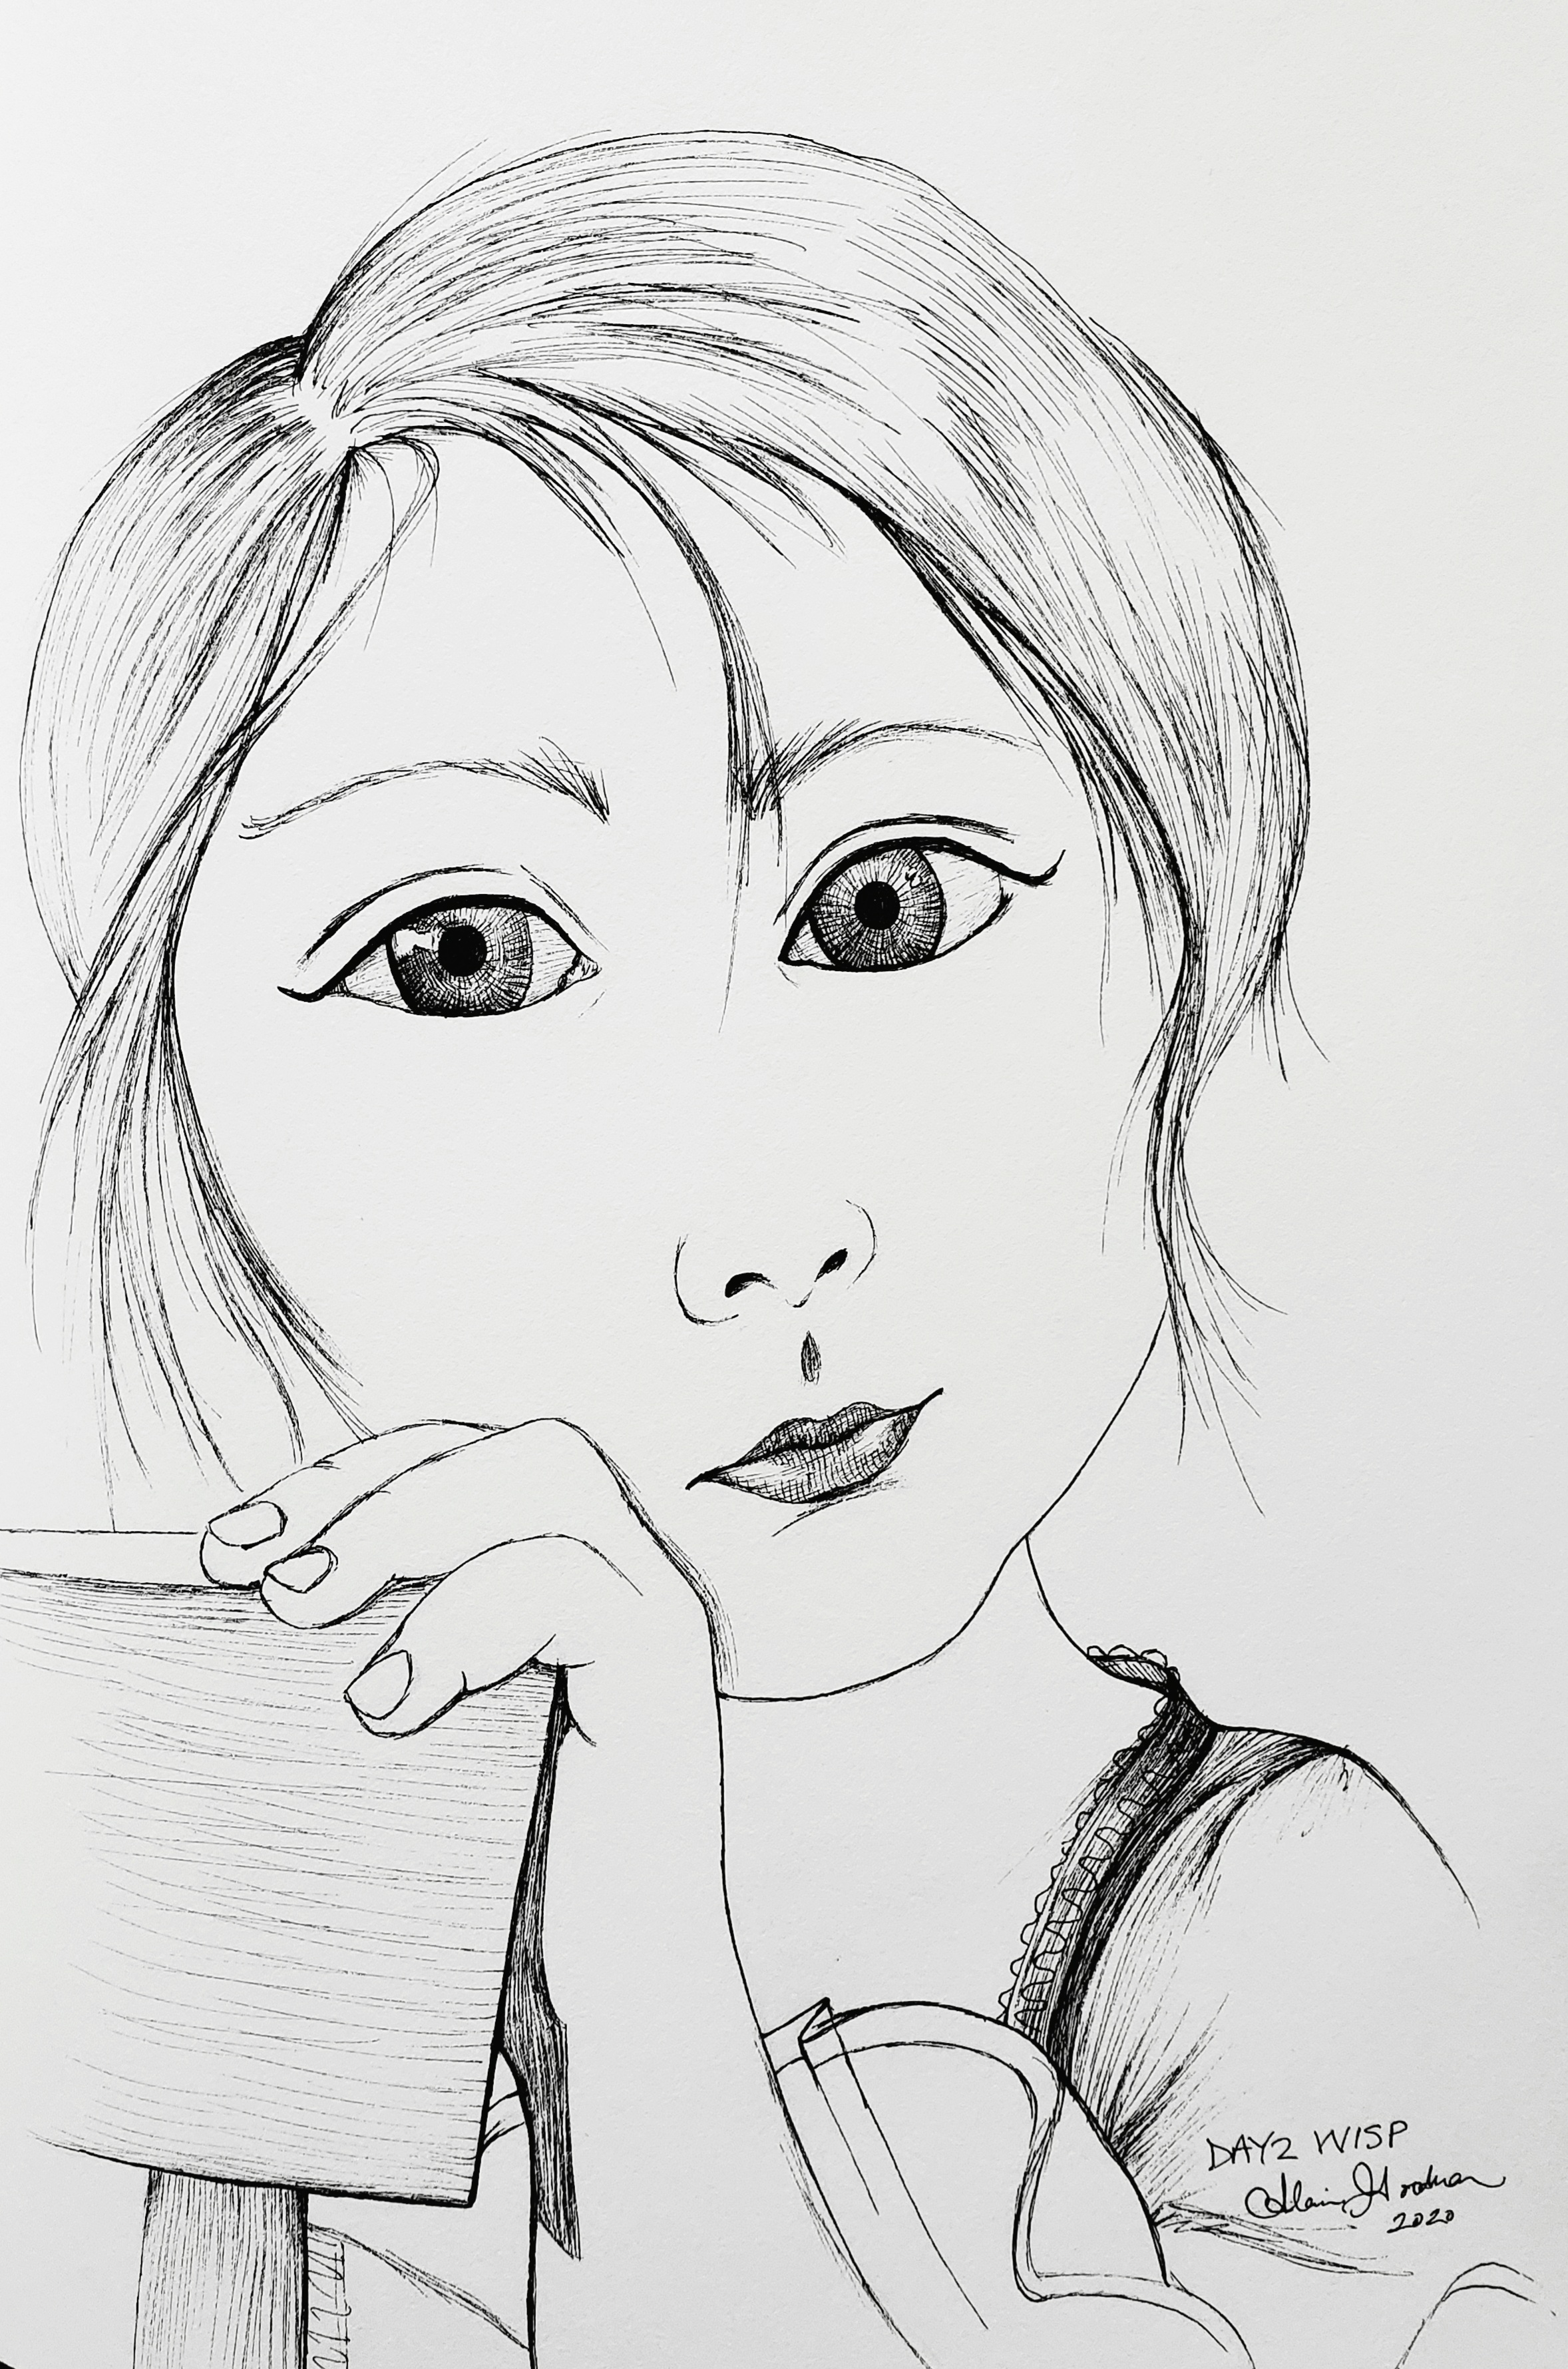 Ink drawing of girl by Alecia Goodman 2020